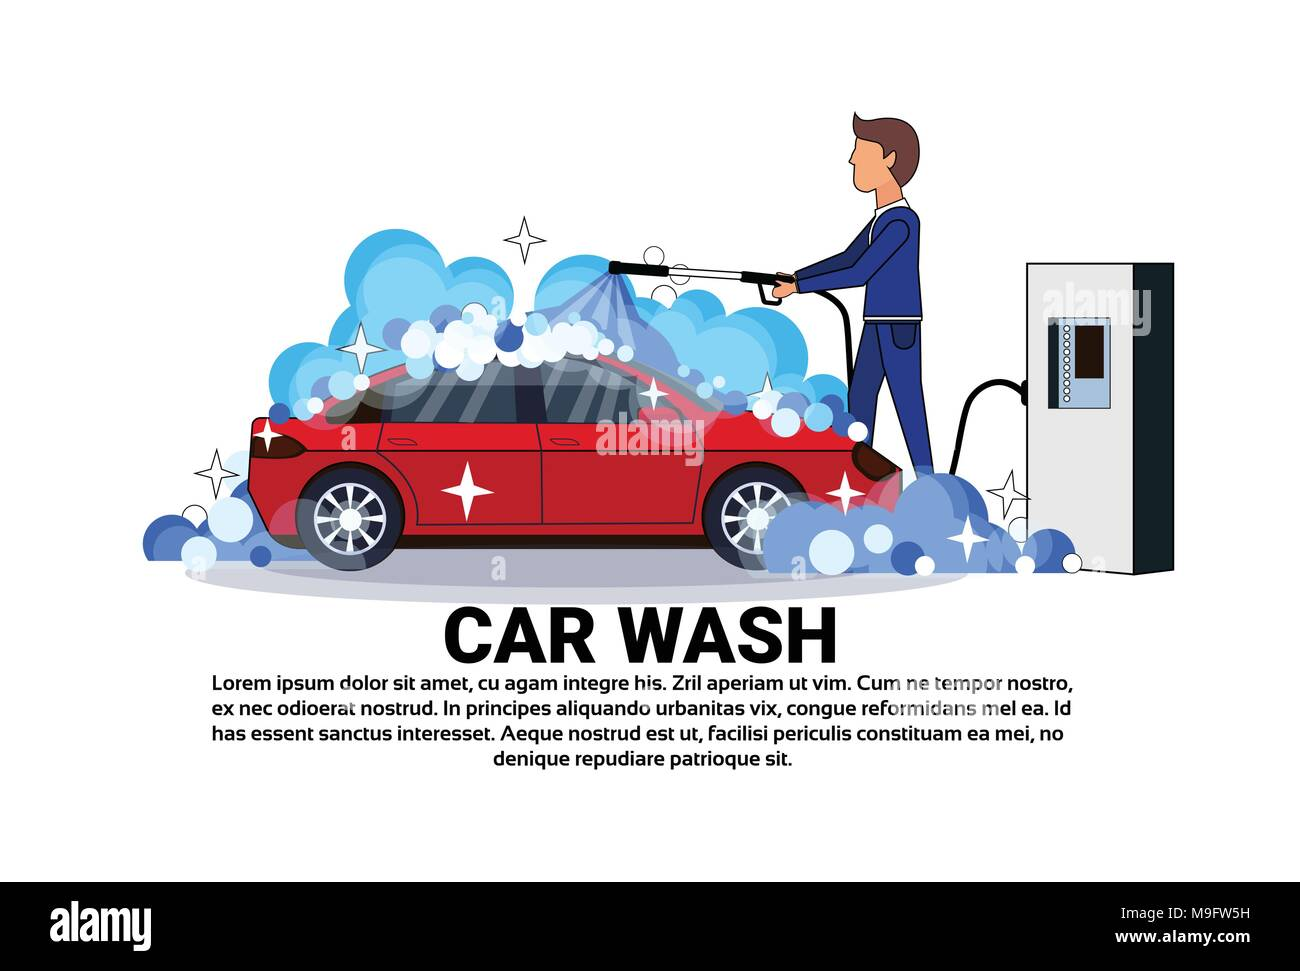 Car Wash Service Worker Cleaning Vehicle Over Copy Space Background